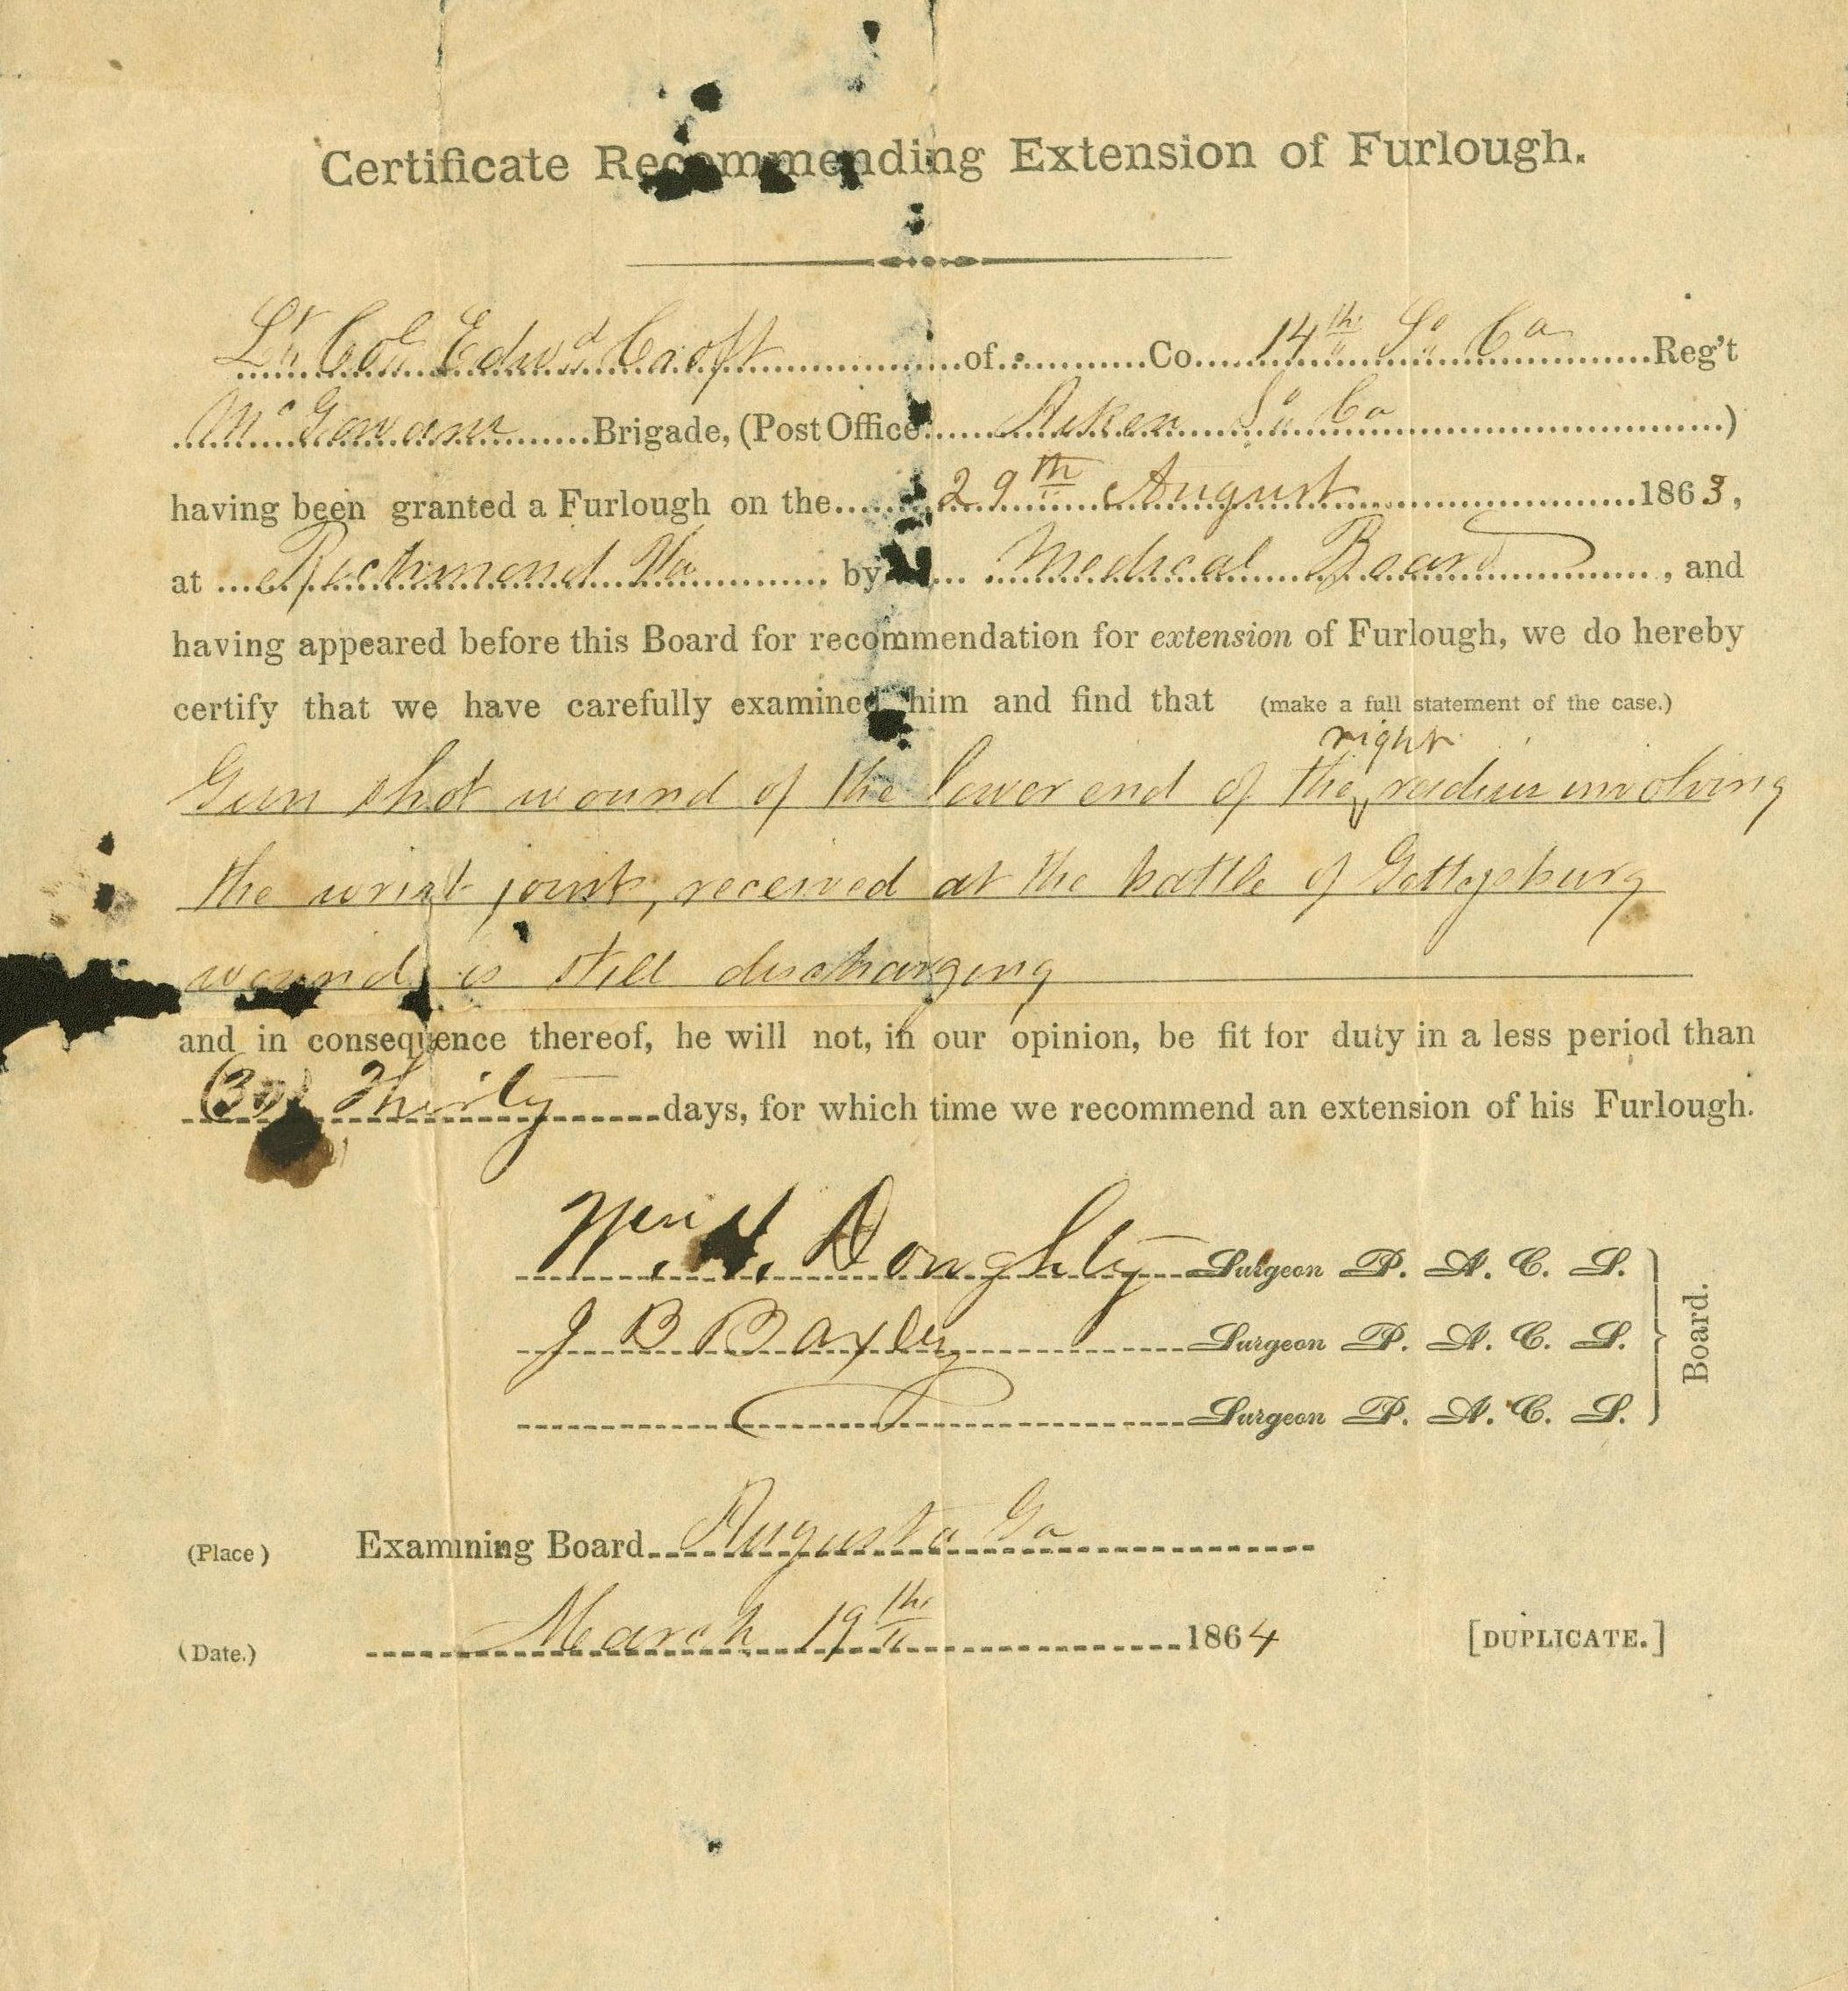 Edward Croft extension of furlough, March 19, 1864